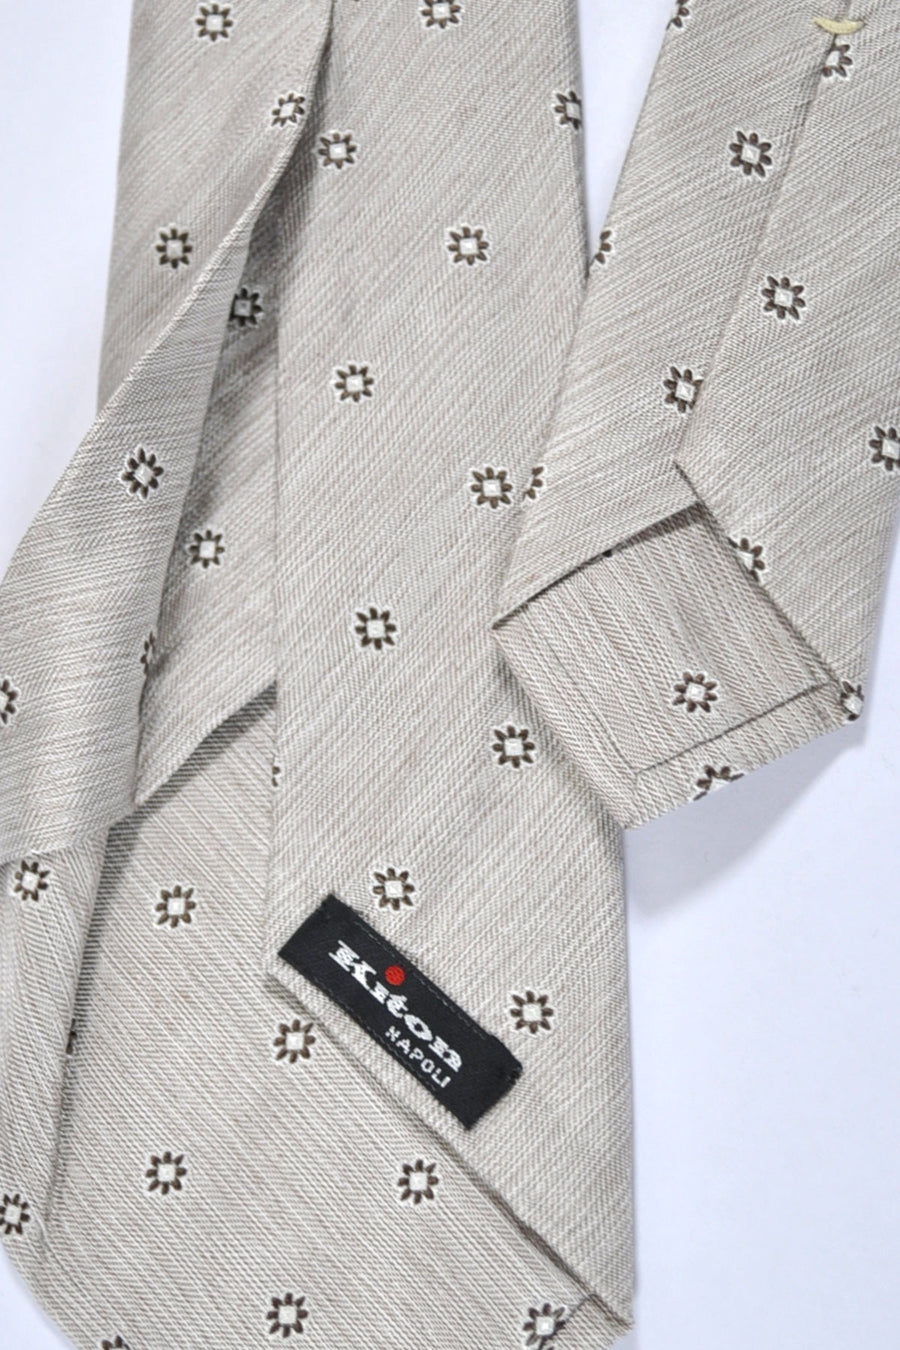 Kiton Sevenfold Tie Cream Silver Brown Geometric